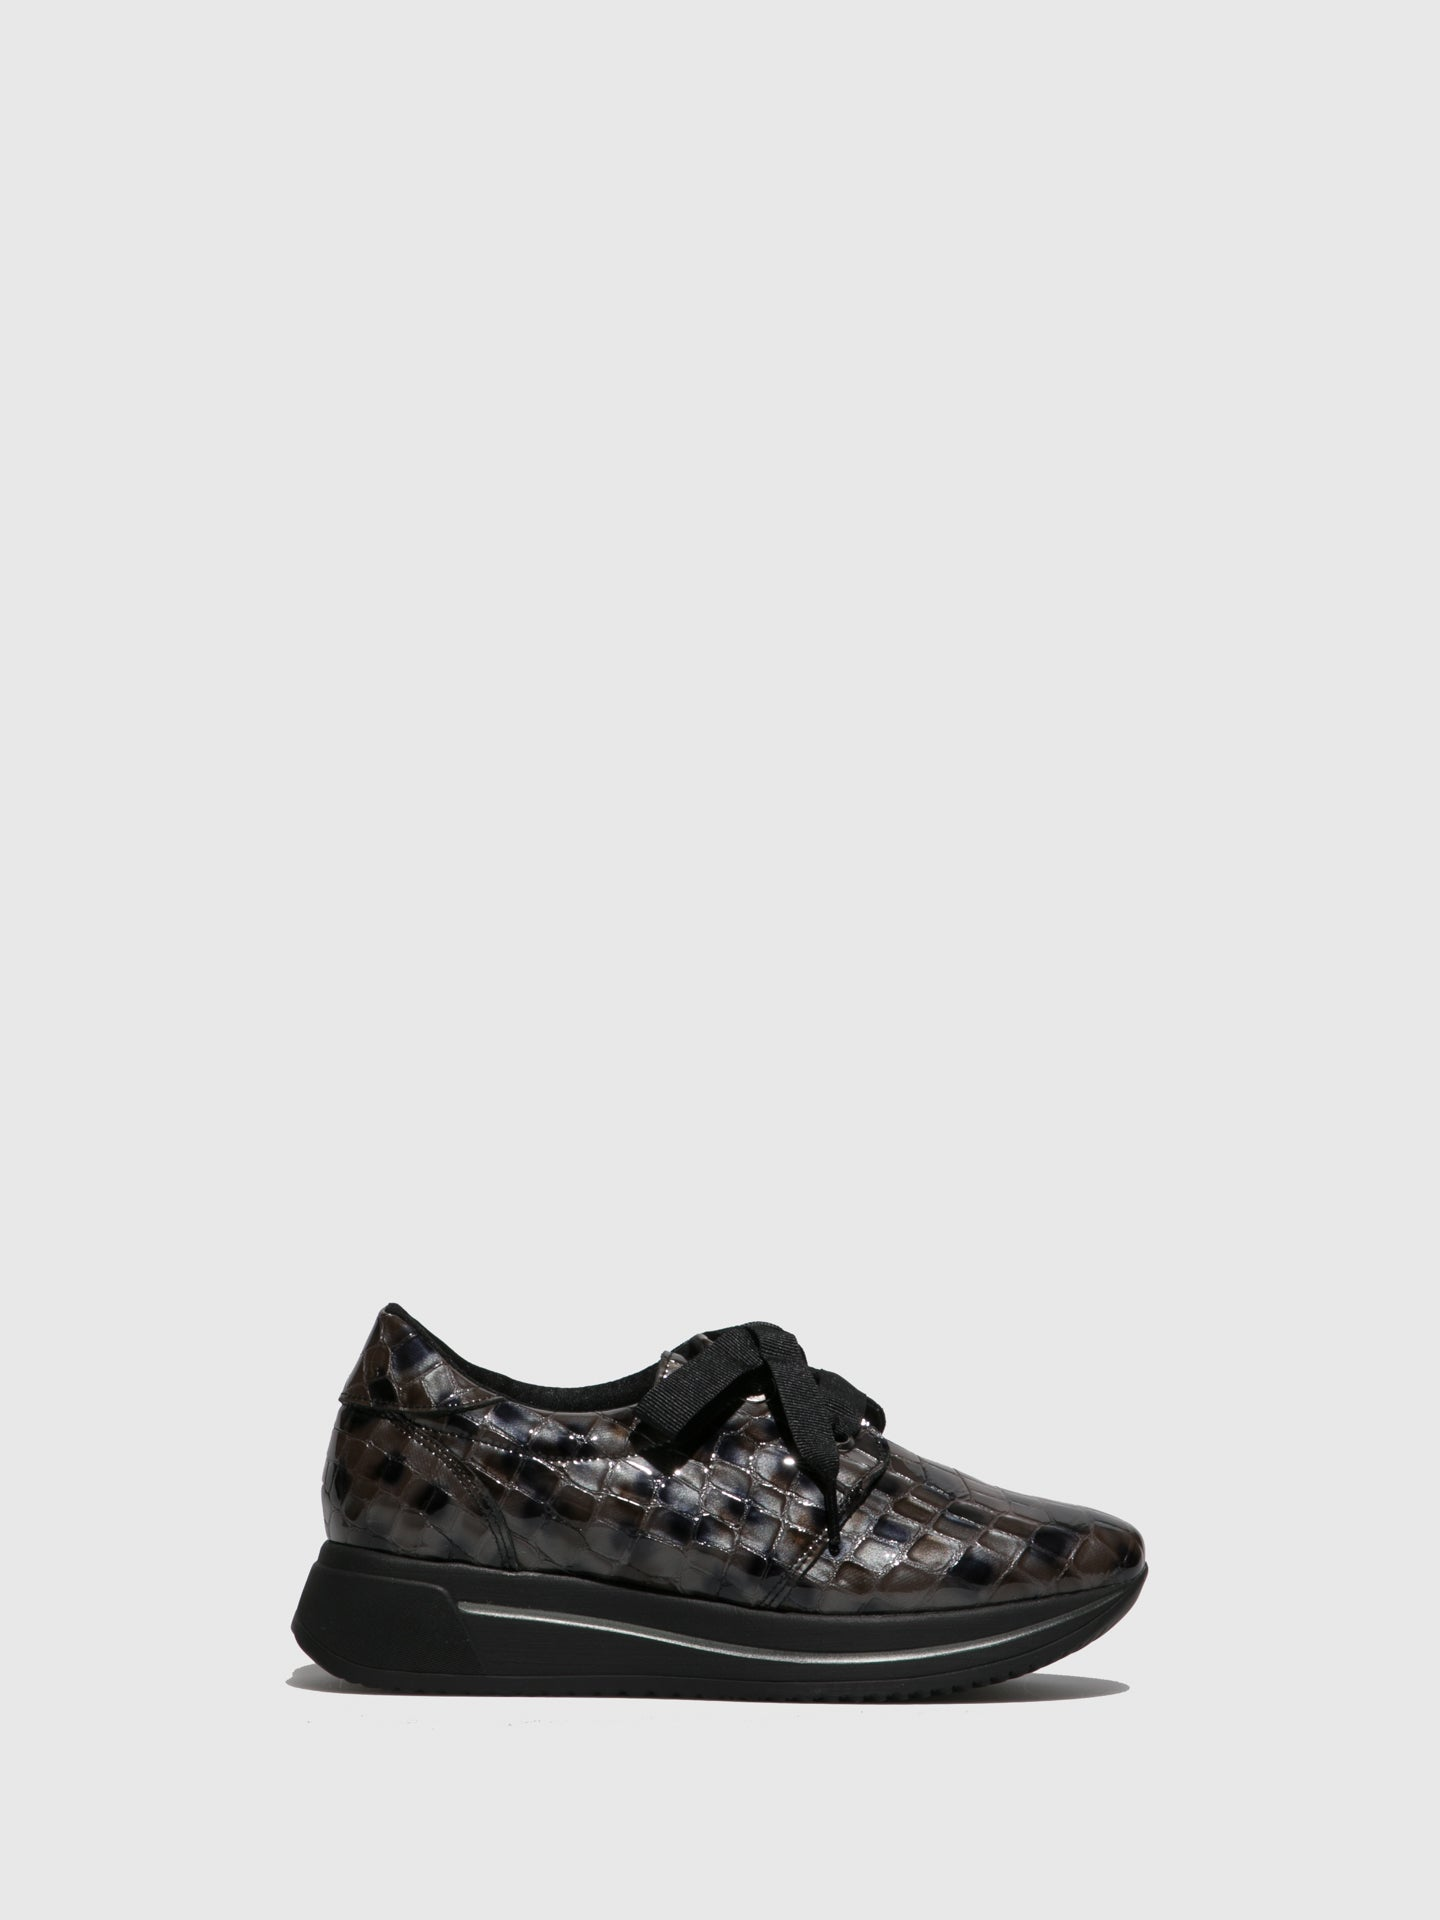 Marila Shoes Black Platform Trainers